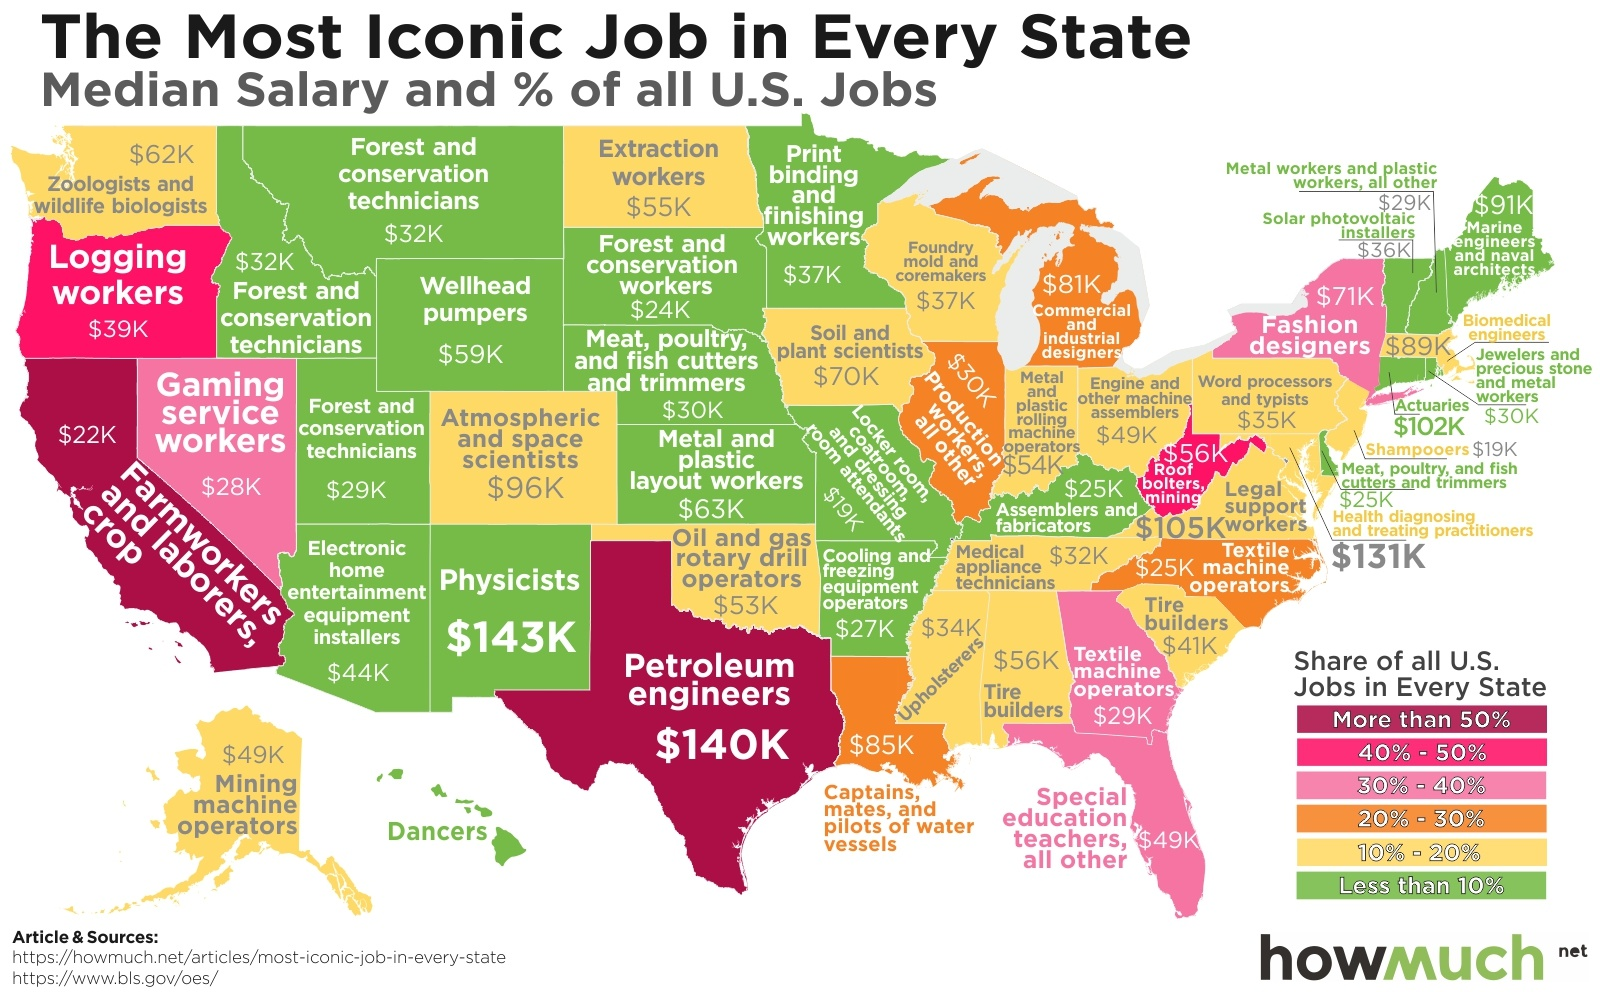 Mapping the Most Iconic Job in Every US State